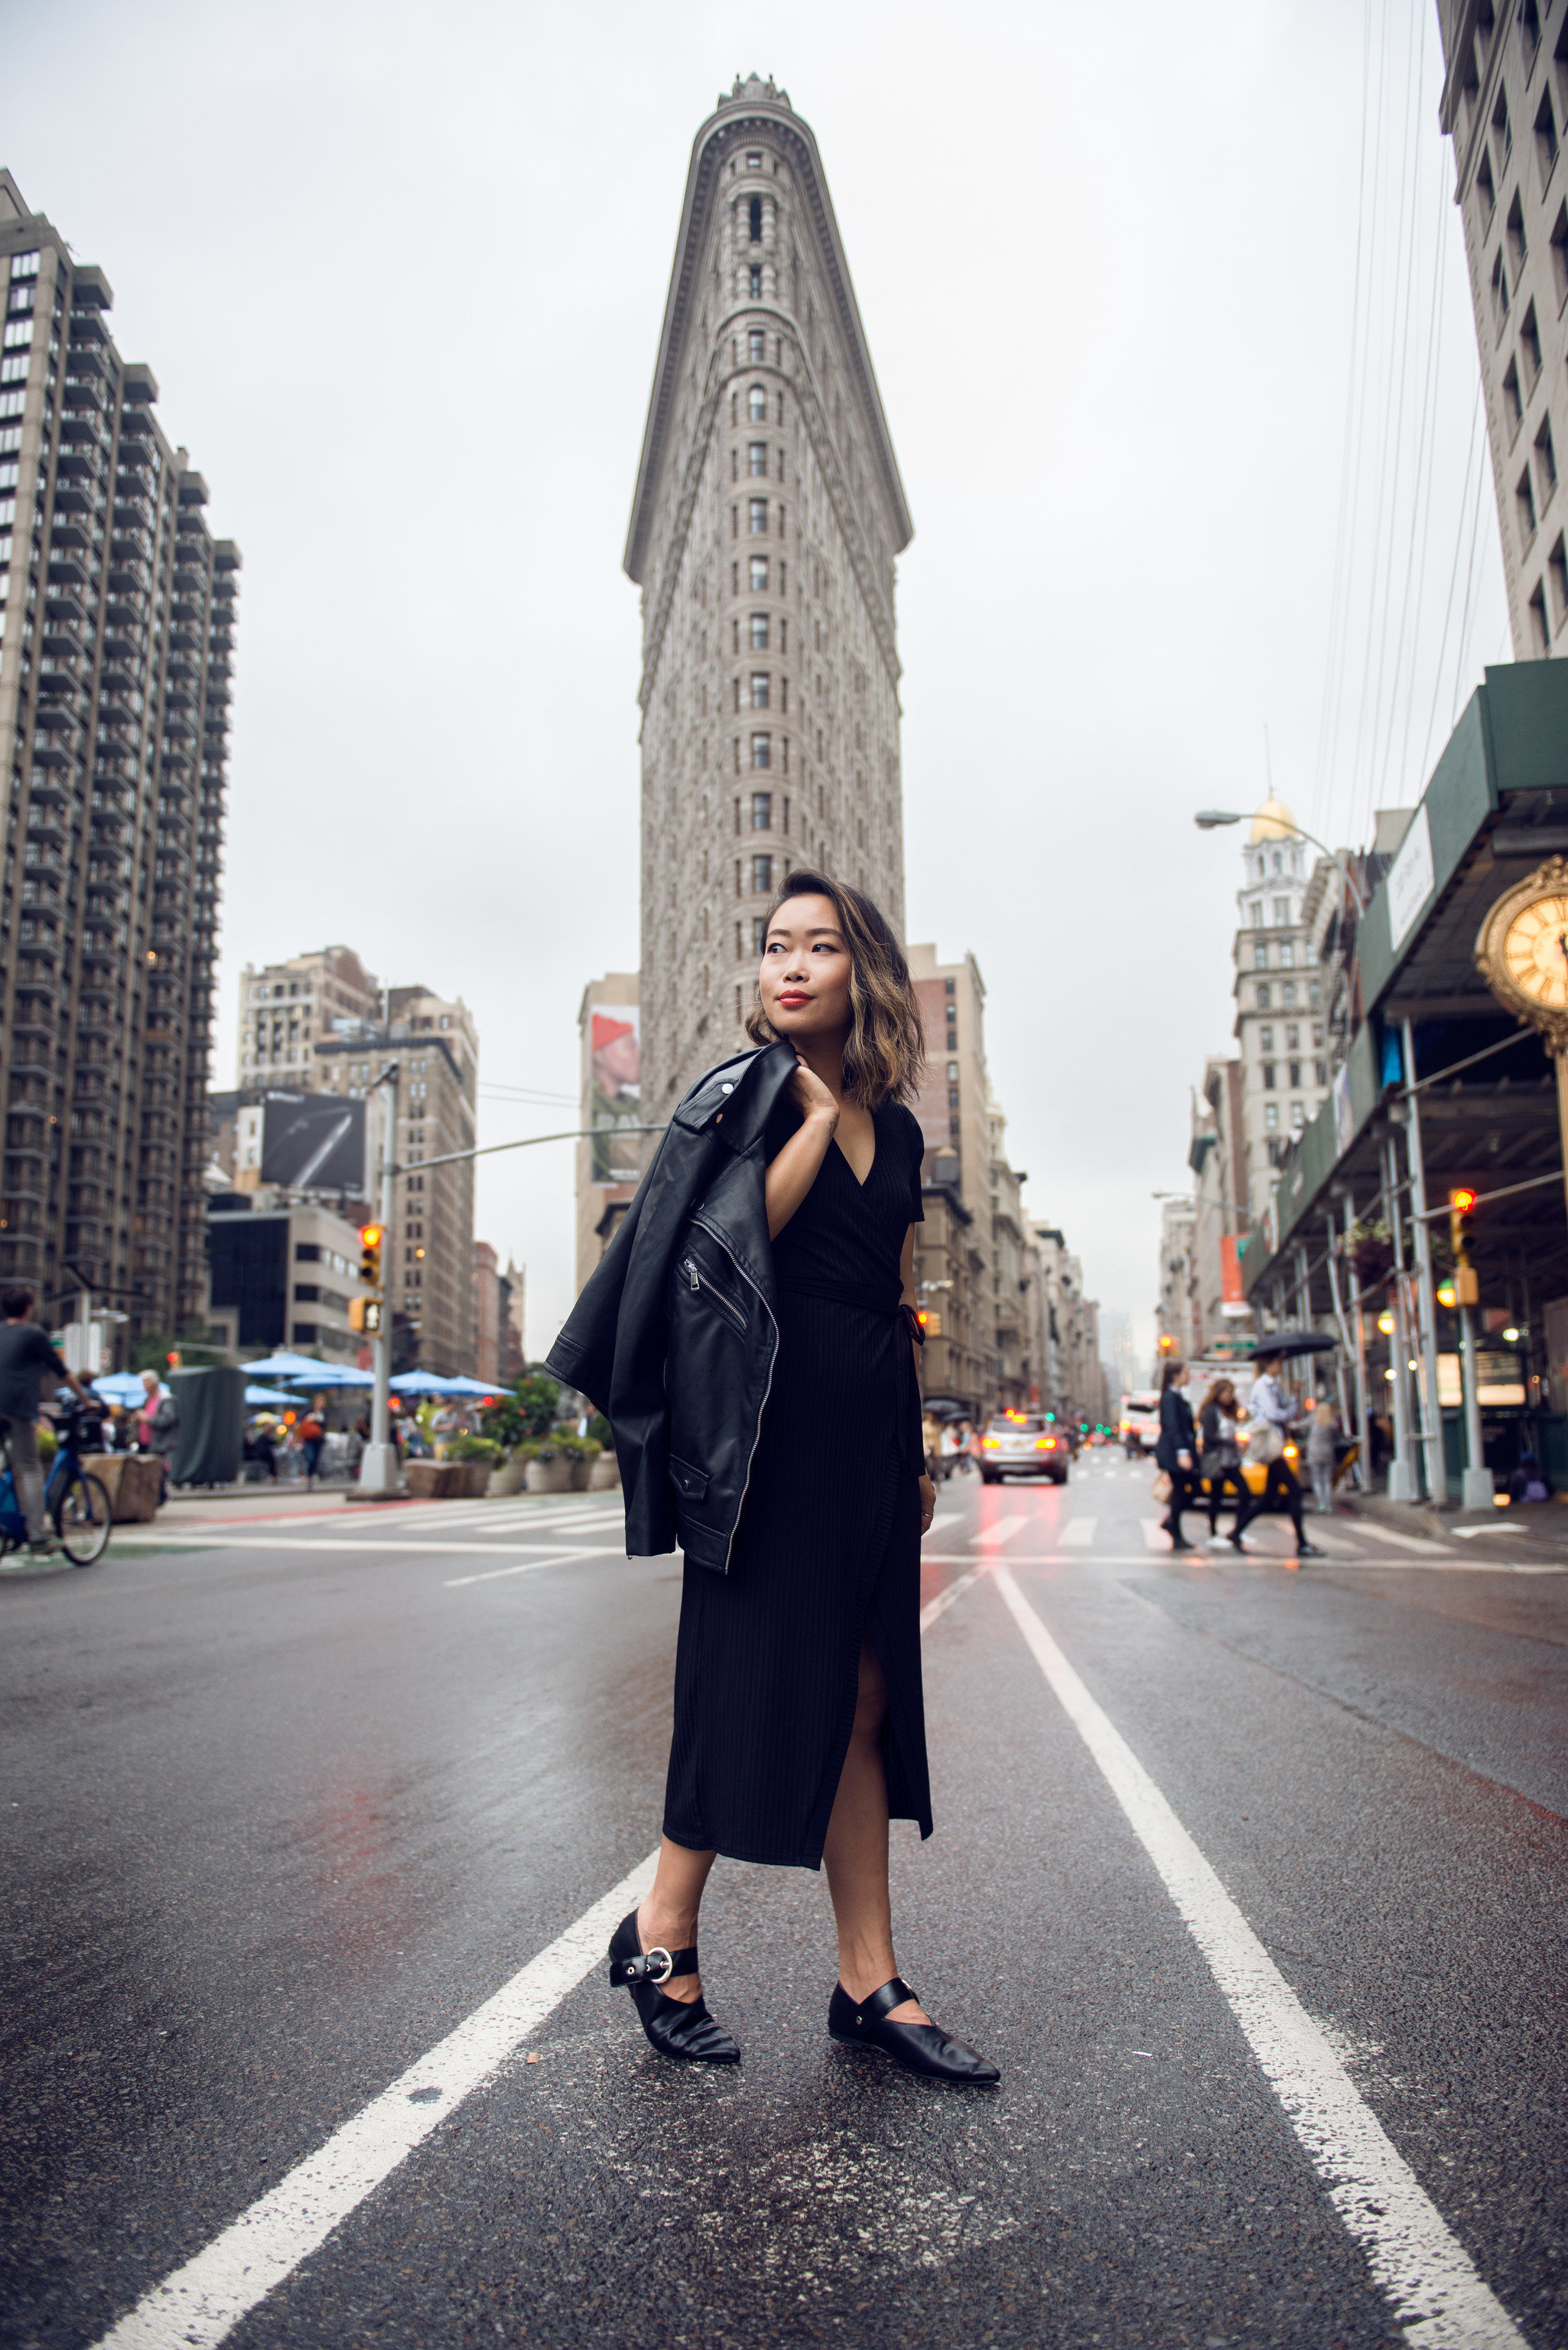 NYC Style + Design Travel Shop road urban area infrastructure City street dress snapshot outerwear fashion standing building girl pedestrian pattern Downtown jeans Winter plaid